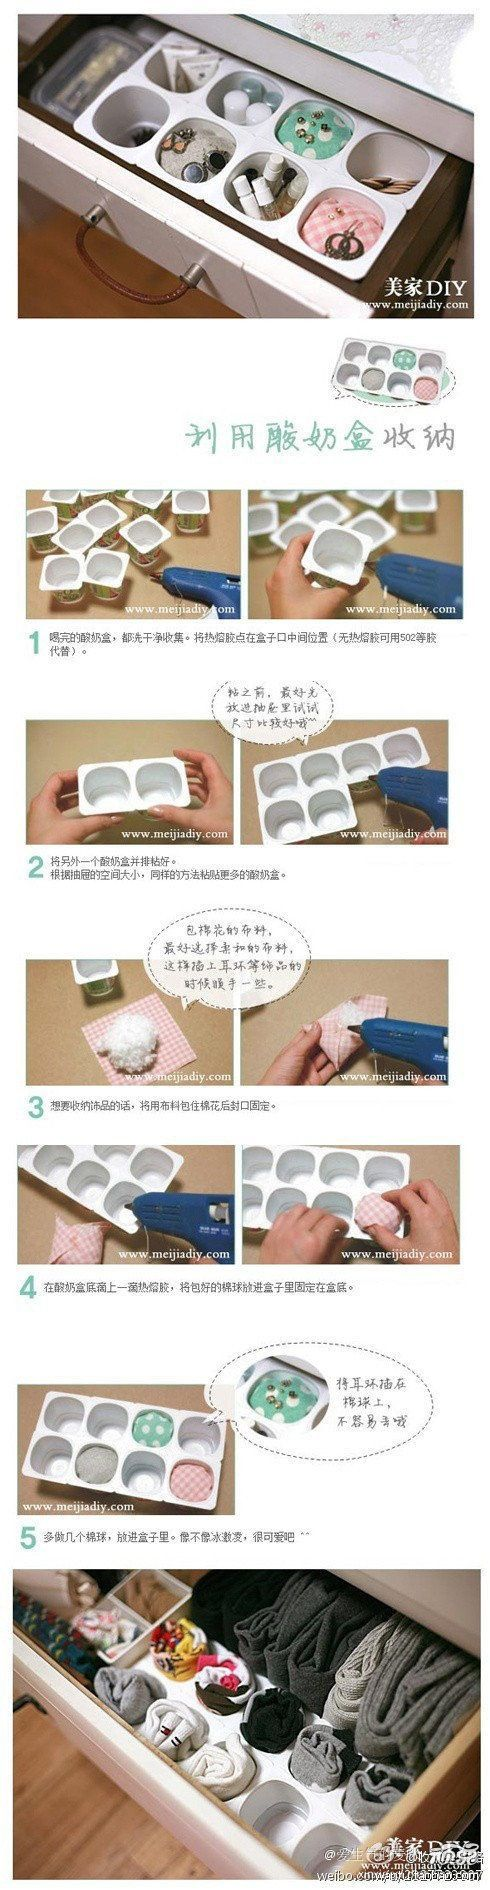 DIY Organiser. Using empty yogurt cans. Cool!